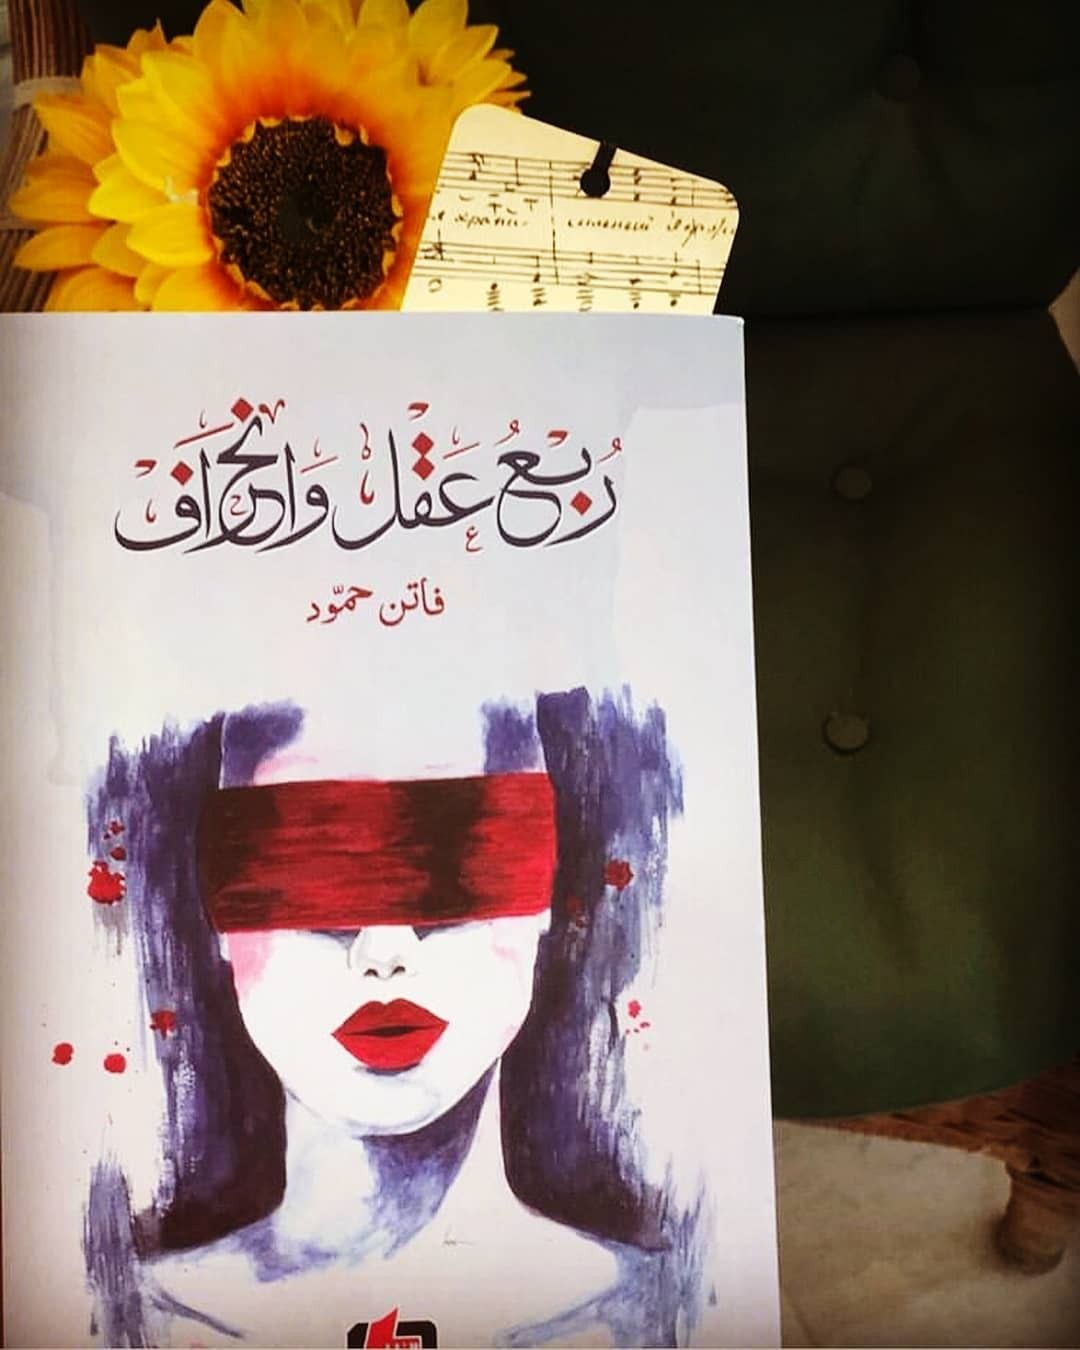 ربع عقل و انحراف Books Book Cover Cover